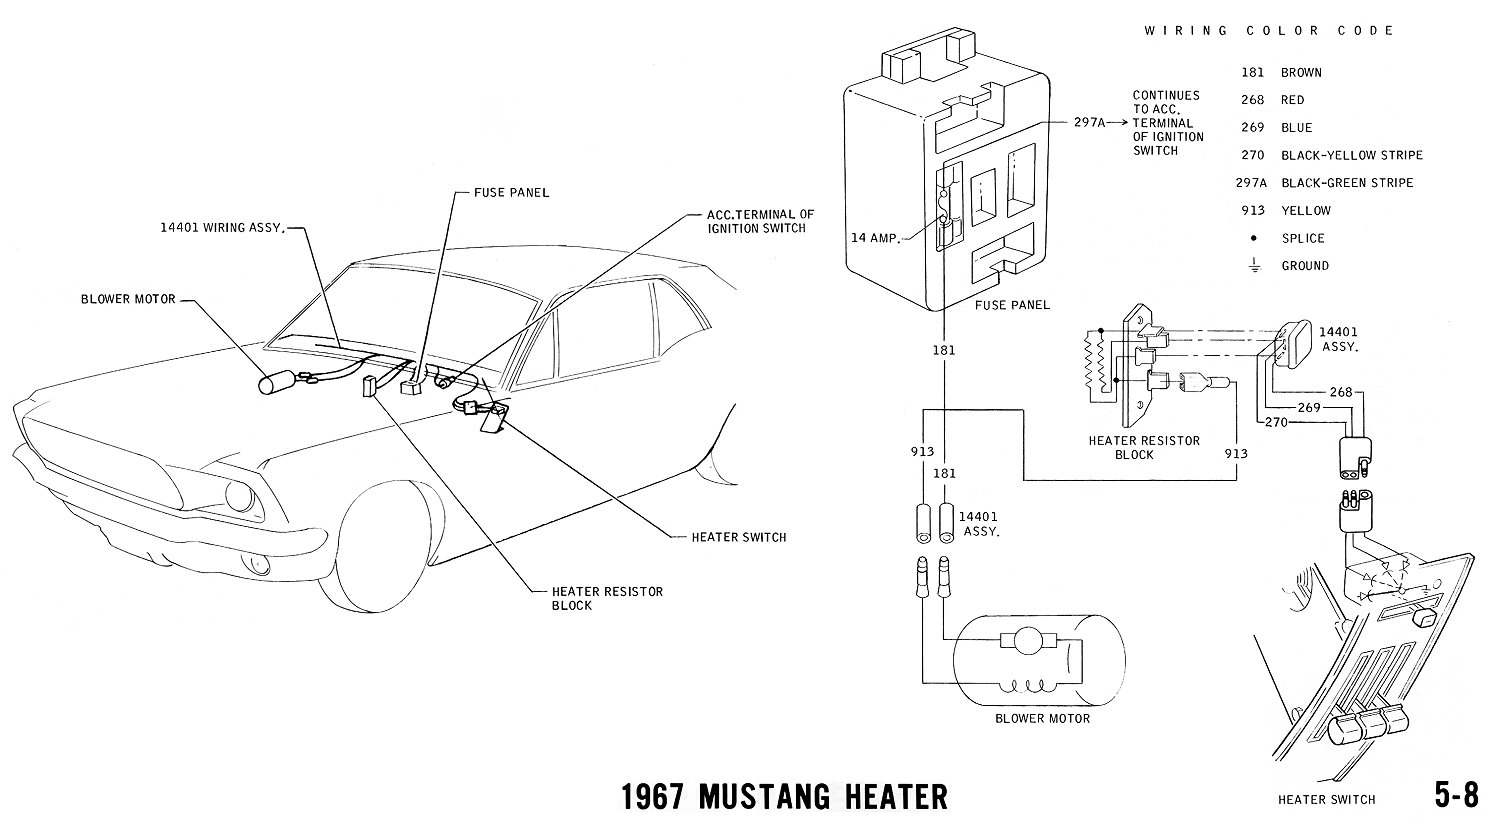 67heater 1967 mustang wiring and vacuum diagrams average joe restoration 1970 mustang fuse box diagram at reclaimingppi.co